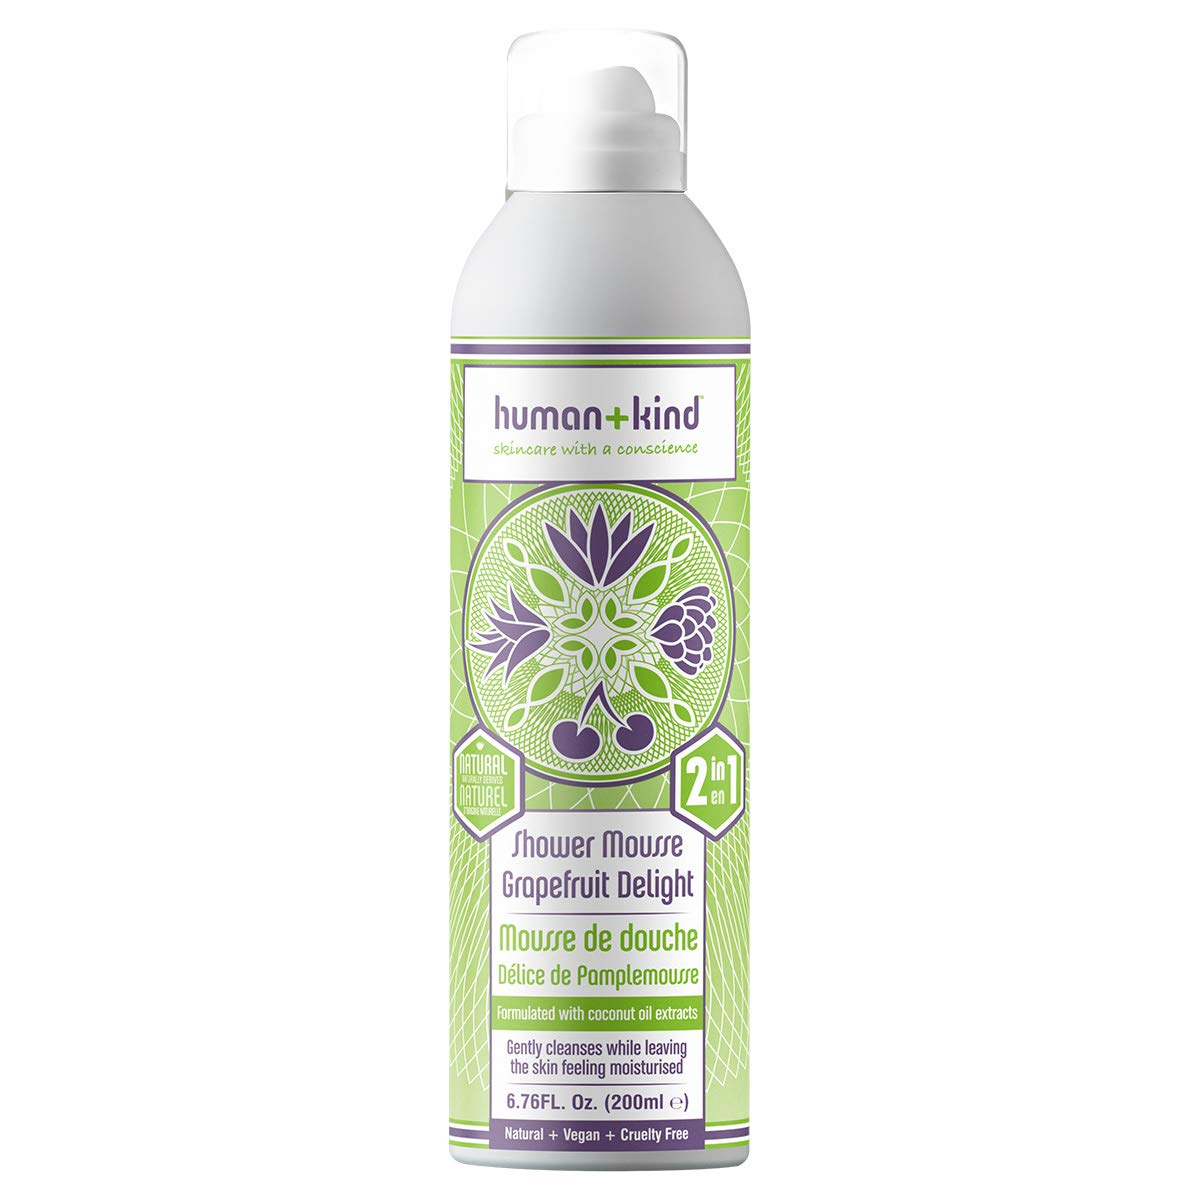 Human+Kind Shower Mousse | Lather and Cleanse Skin with Puffs of Fluffy Foam | Nourishes Dry Skin with Coconut Oil | Natural, Vegan Skin Care | Grapefruit Delight - 6.76 fl oz by Human+Kind